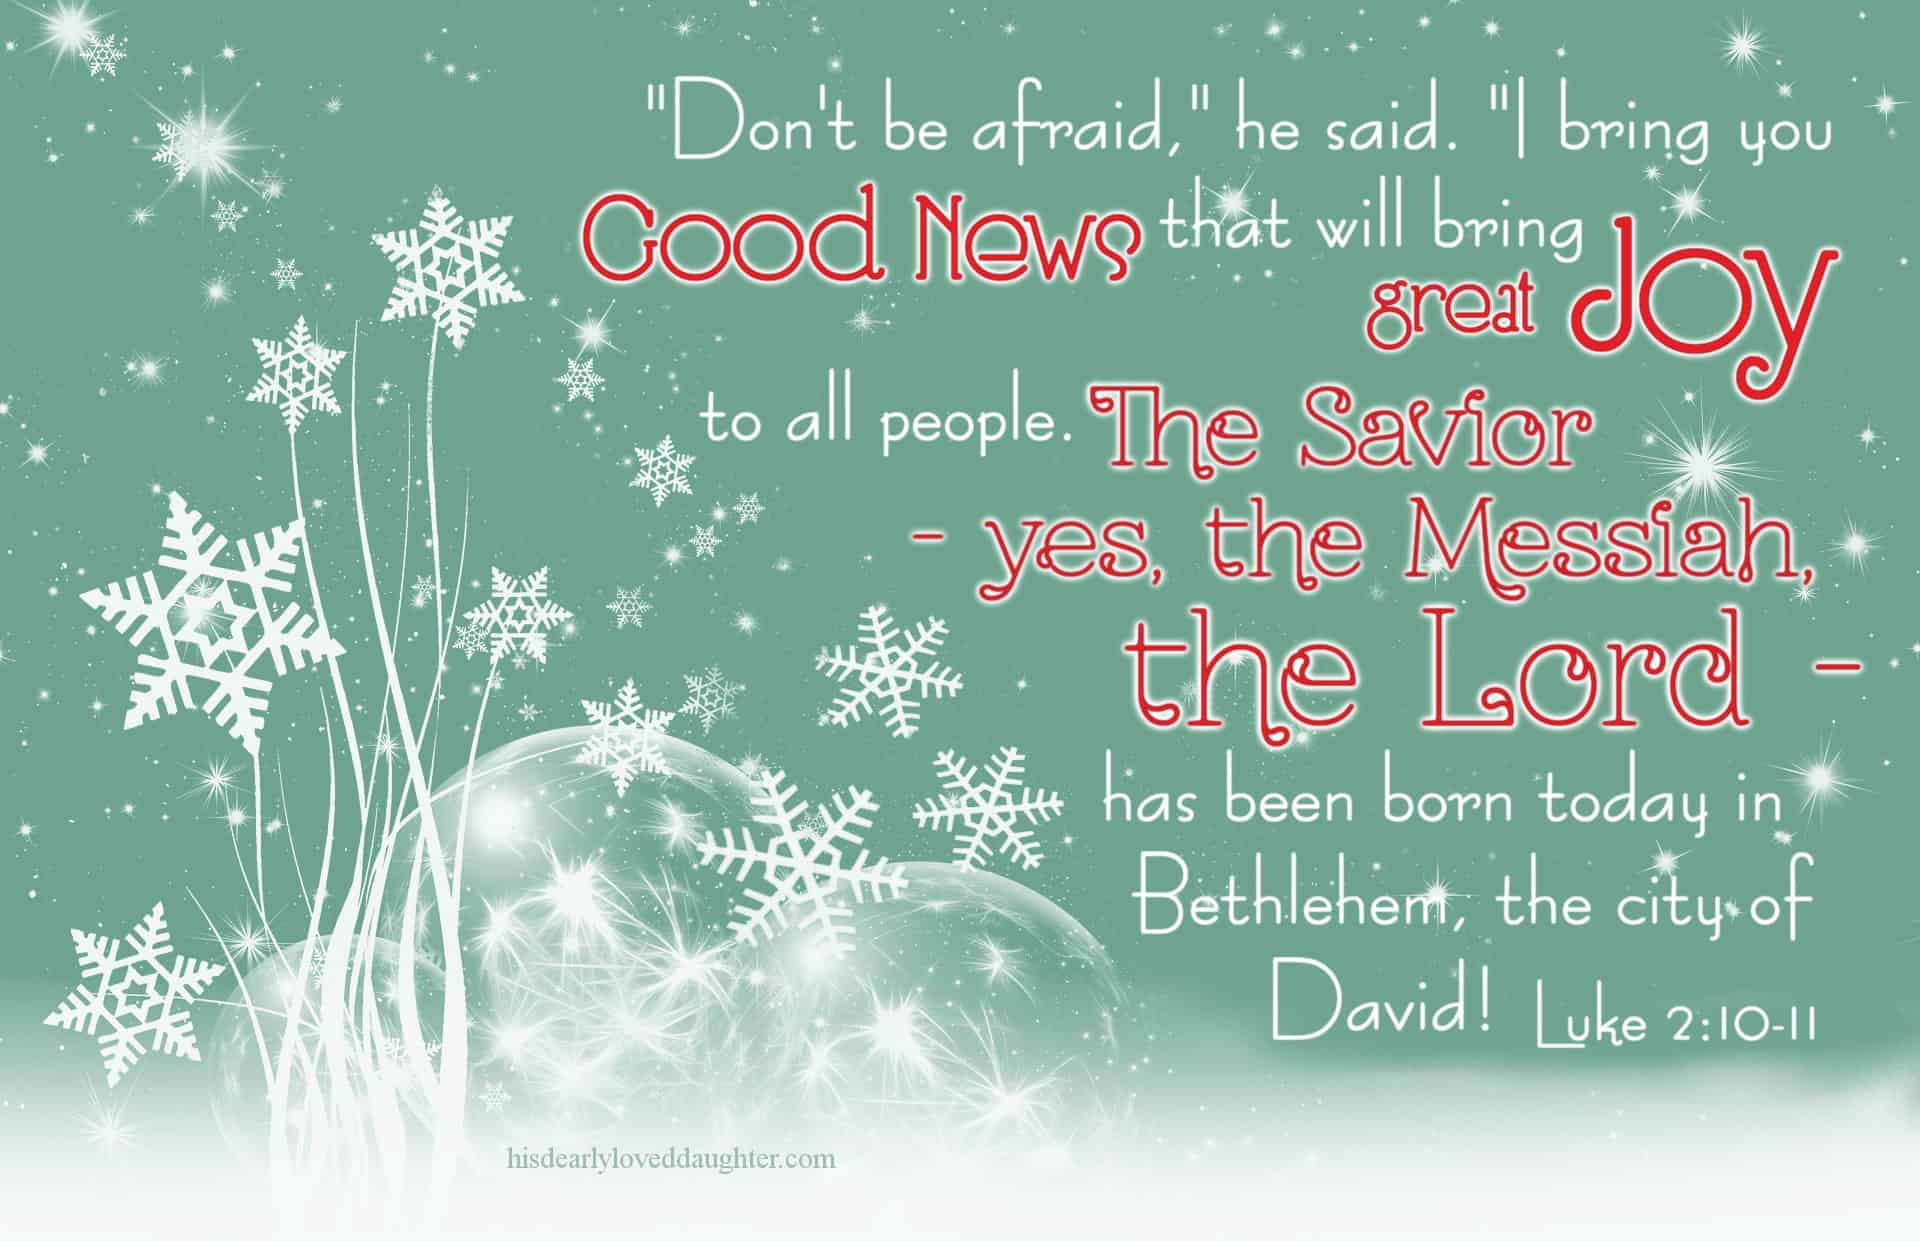 """""""Don't be afraid,"""" he said. """"I bring you good news that will bring great JOY to all people. The Savior - yes, the Messiah, the Lord - has been born today in Bethlehem, the city of David! Luke 2:10-11"""